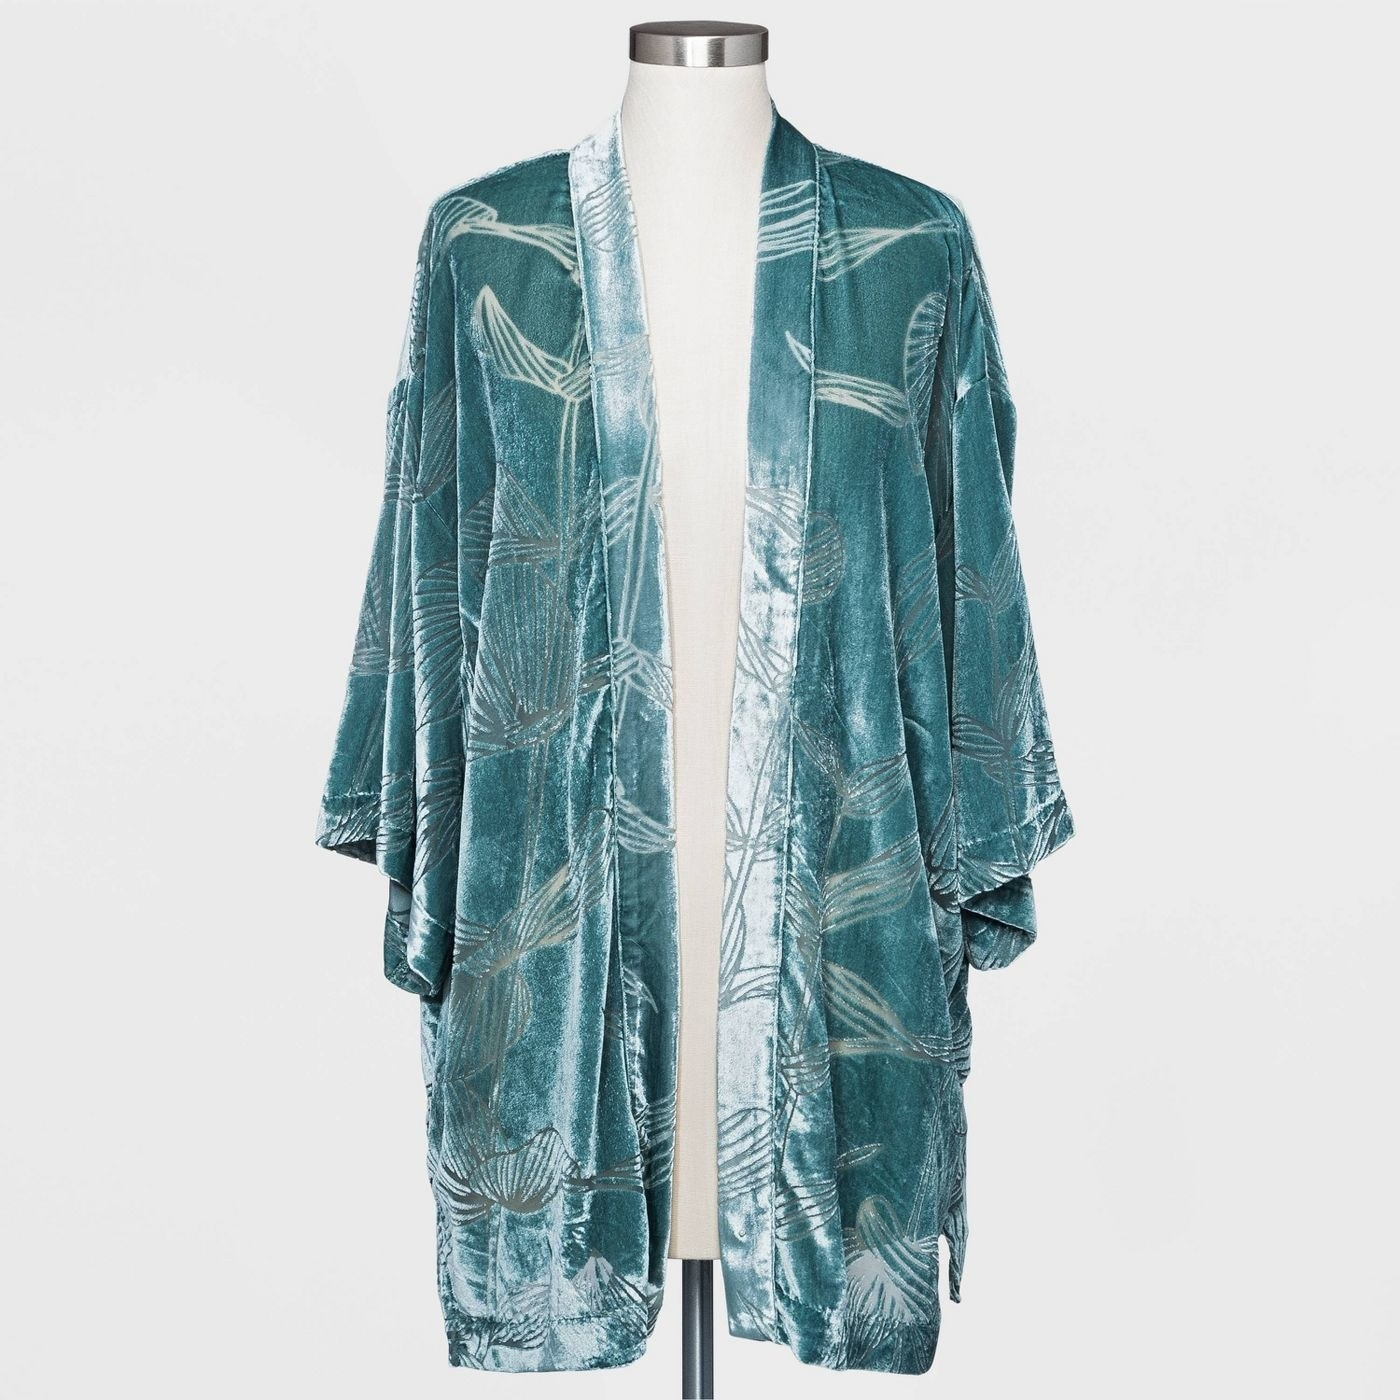 The teal jacket